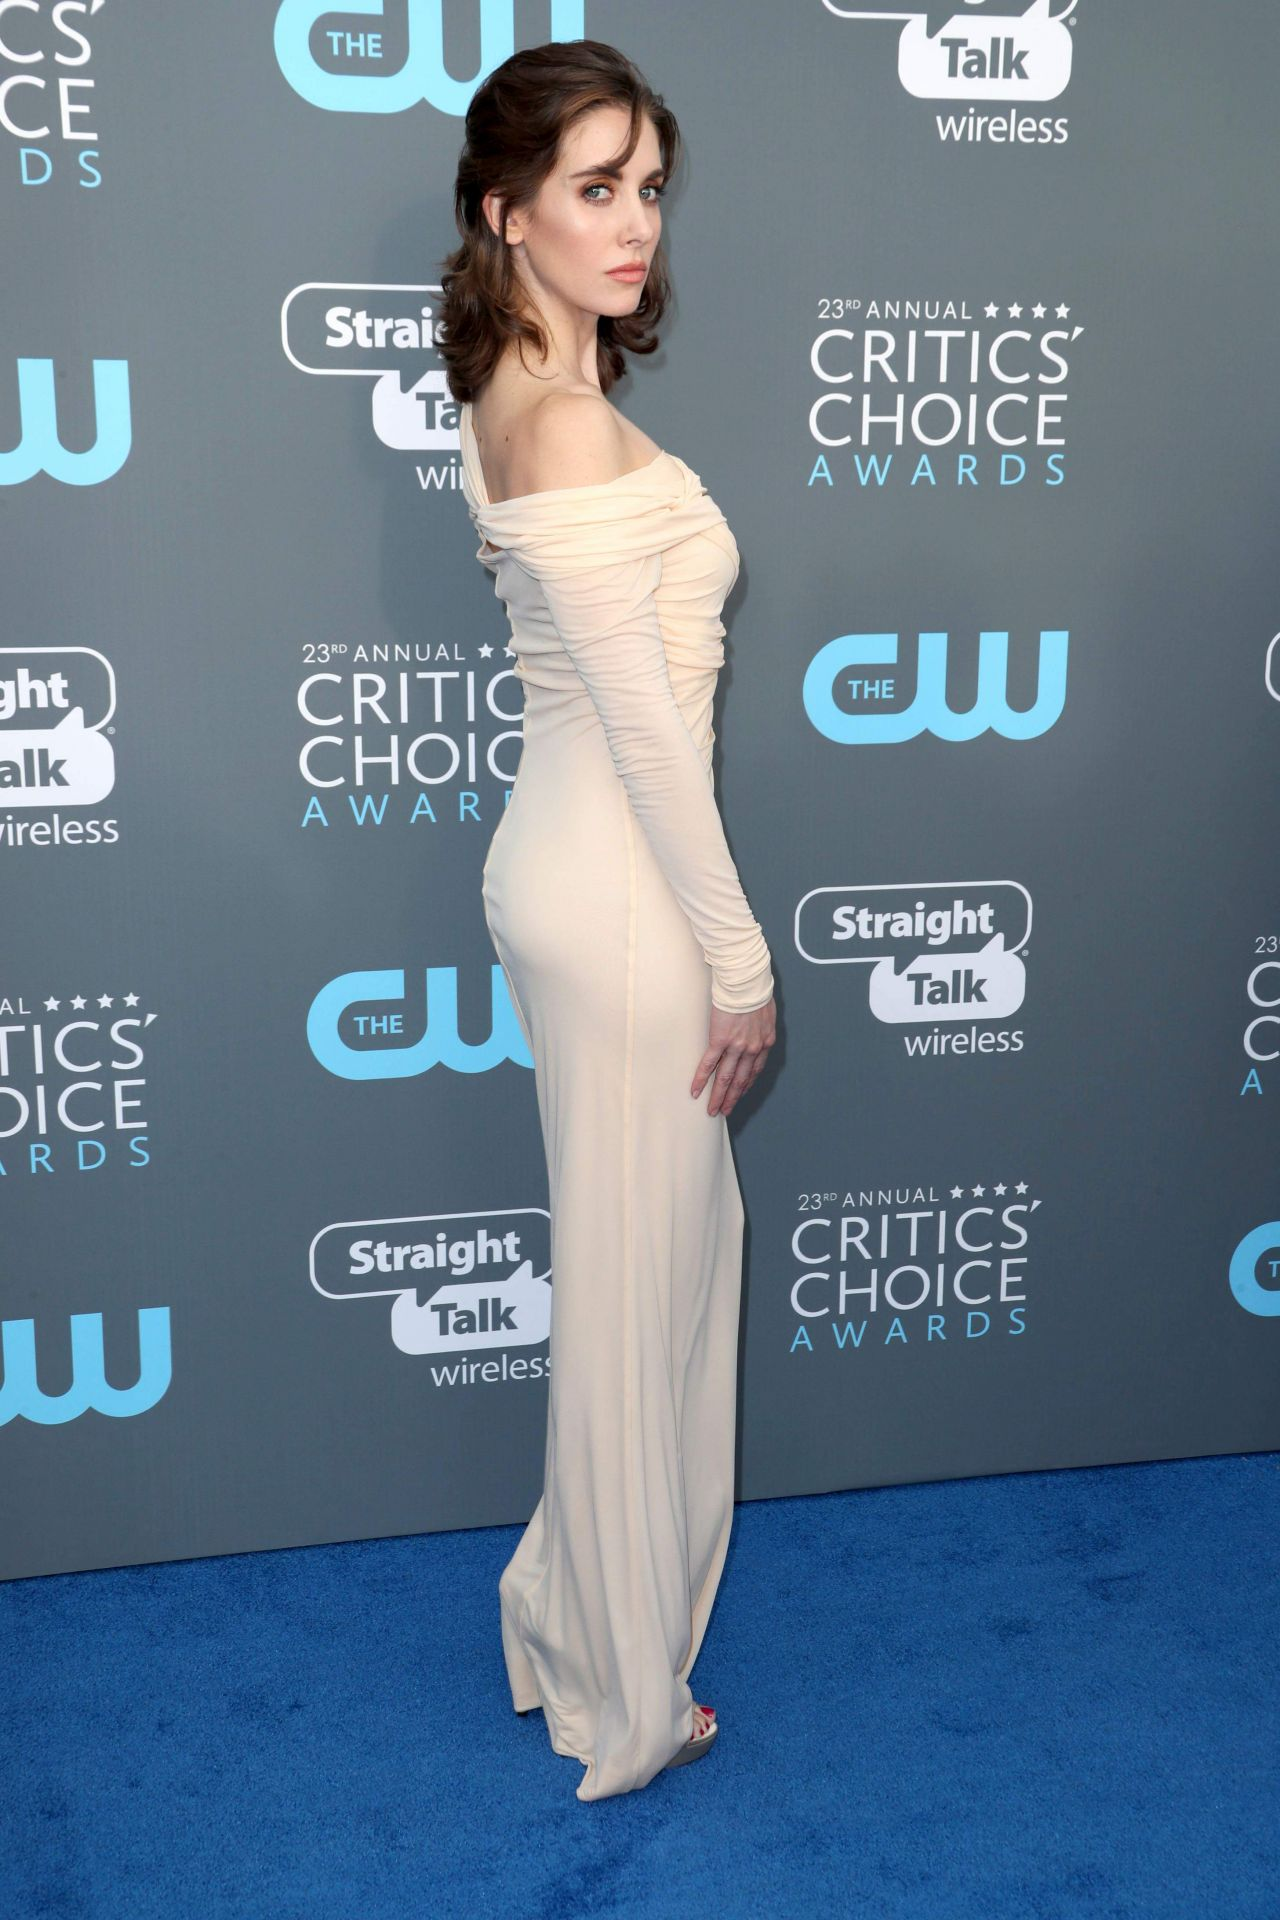 http://celebmafia.com/wp-content/uploads/2018/01/alison-brie-2018-critics-choice-awards-4.jpg